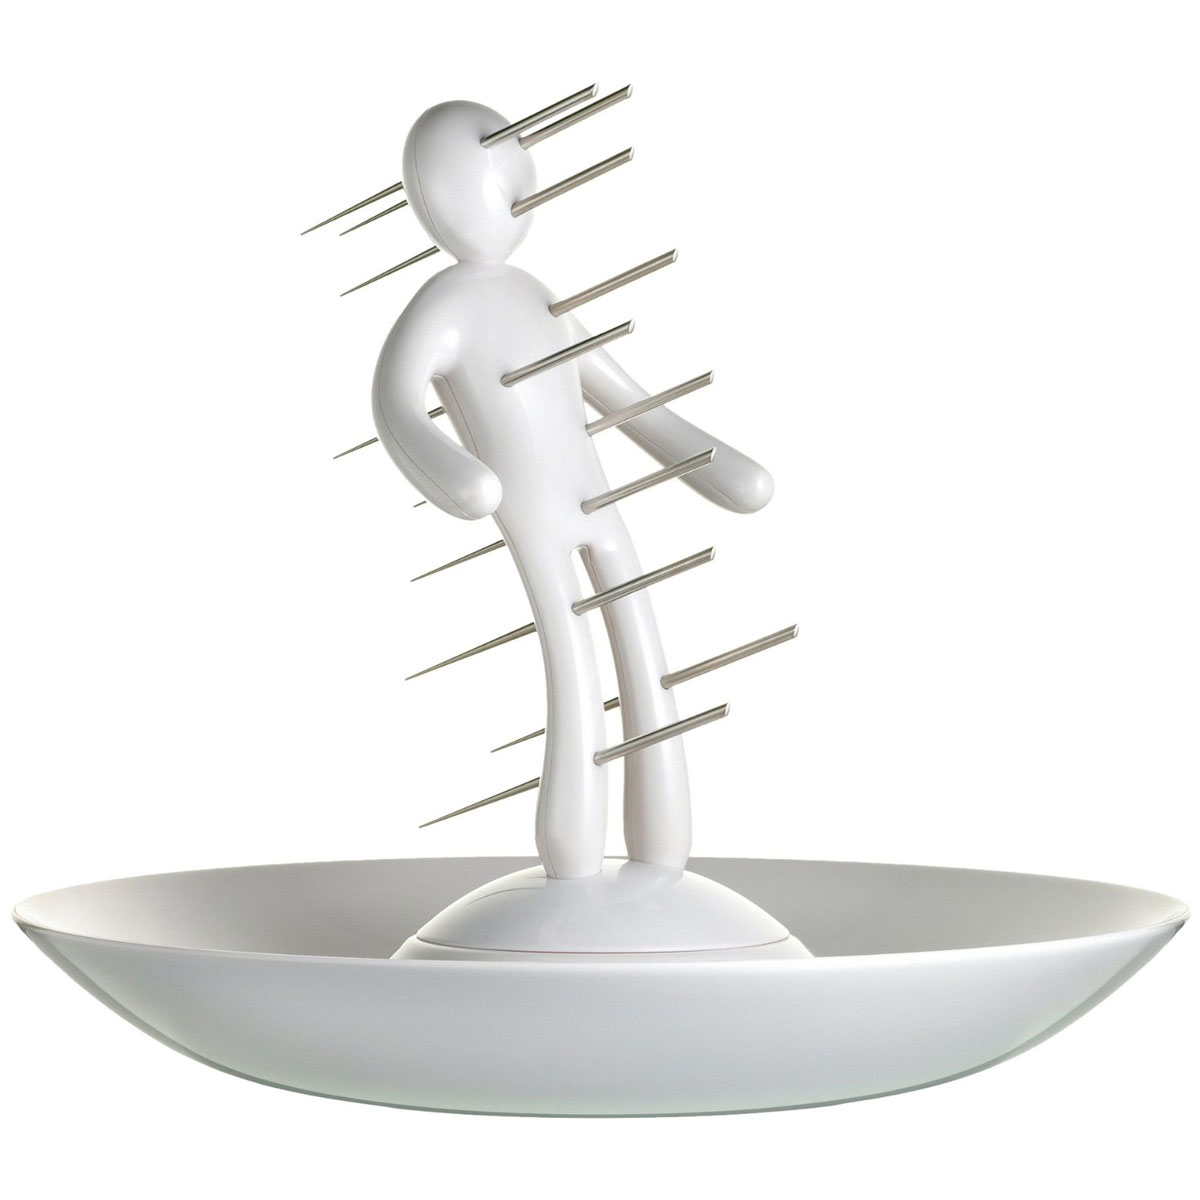 Ex-skewer-set-voodoo-appetizer-serving-tray-5